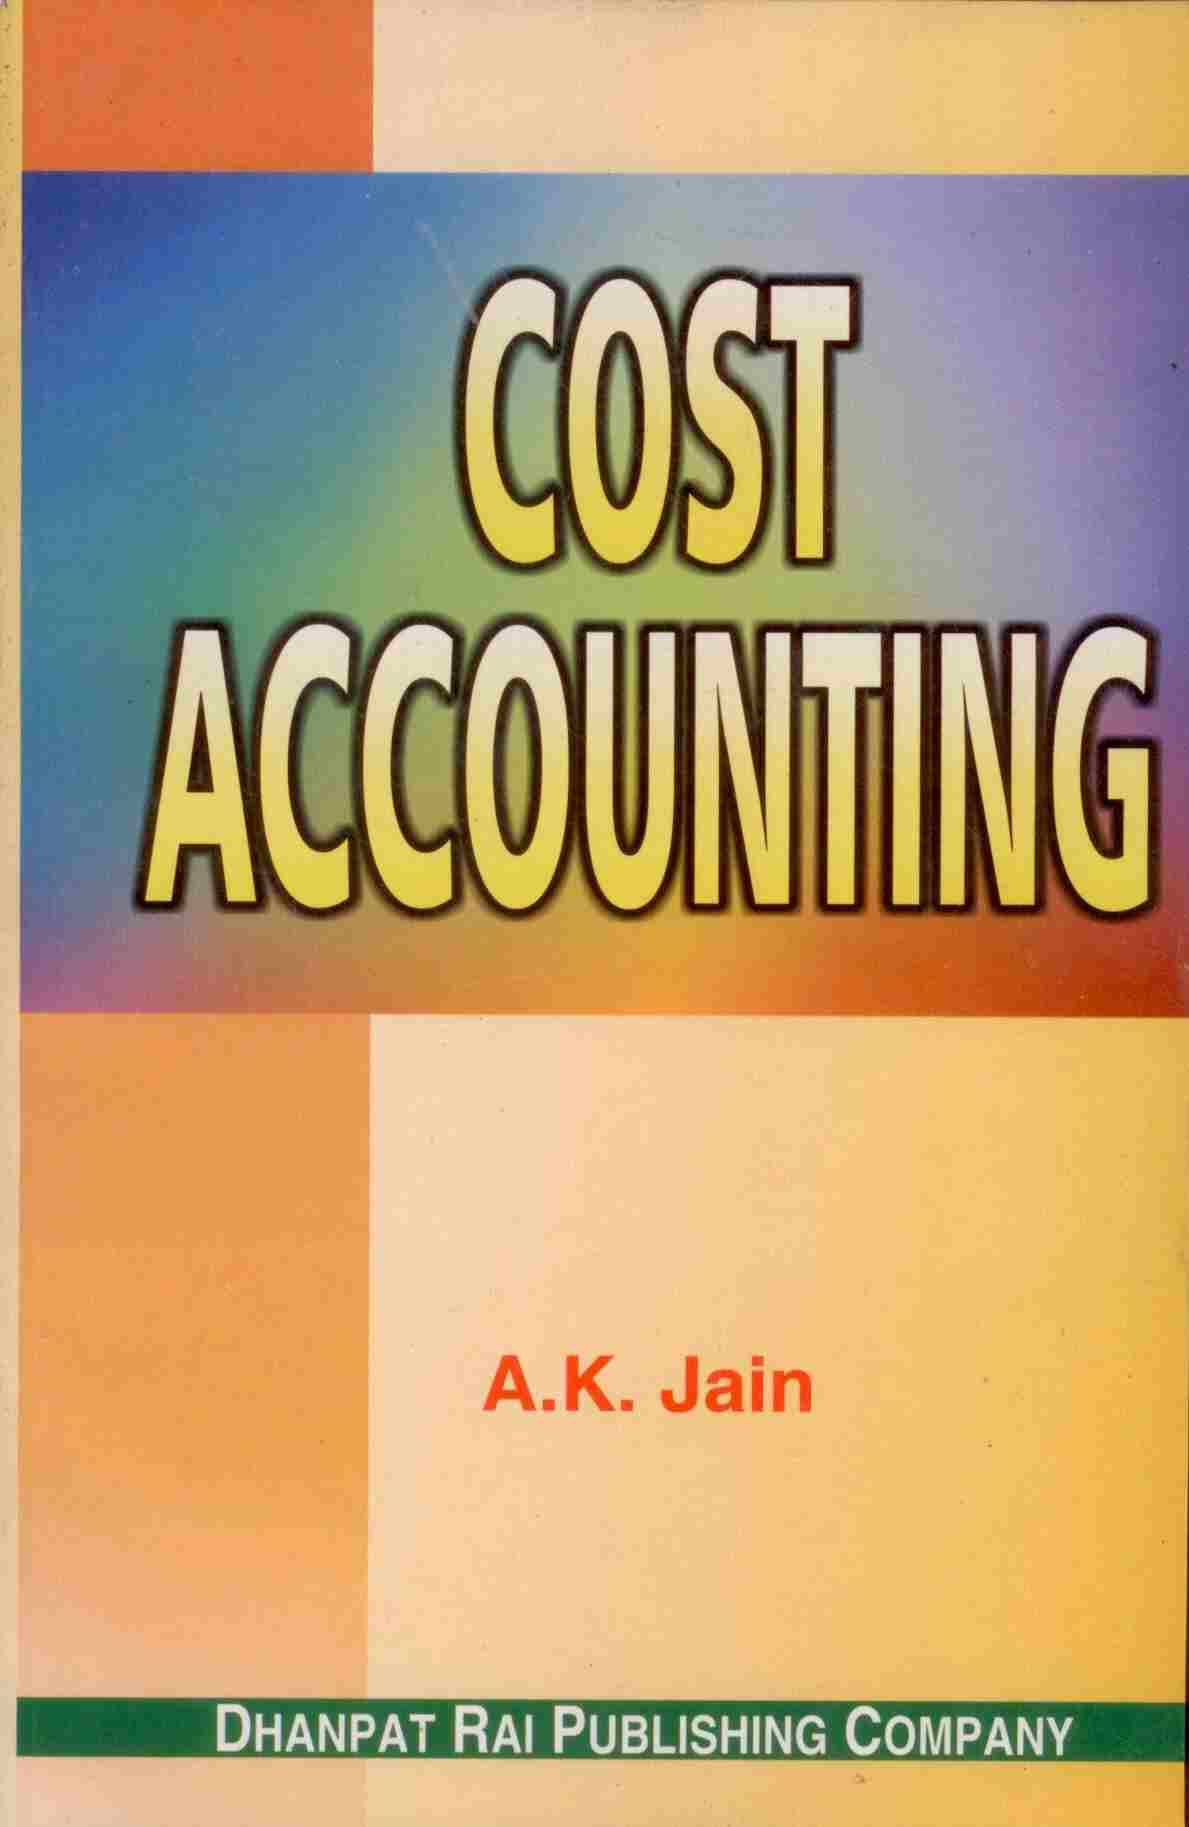 B.Com + Cost Account + Dhanpatrai Books